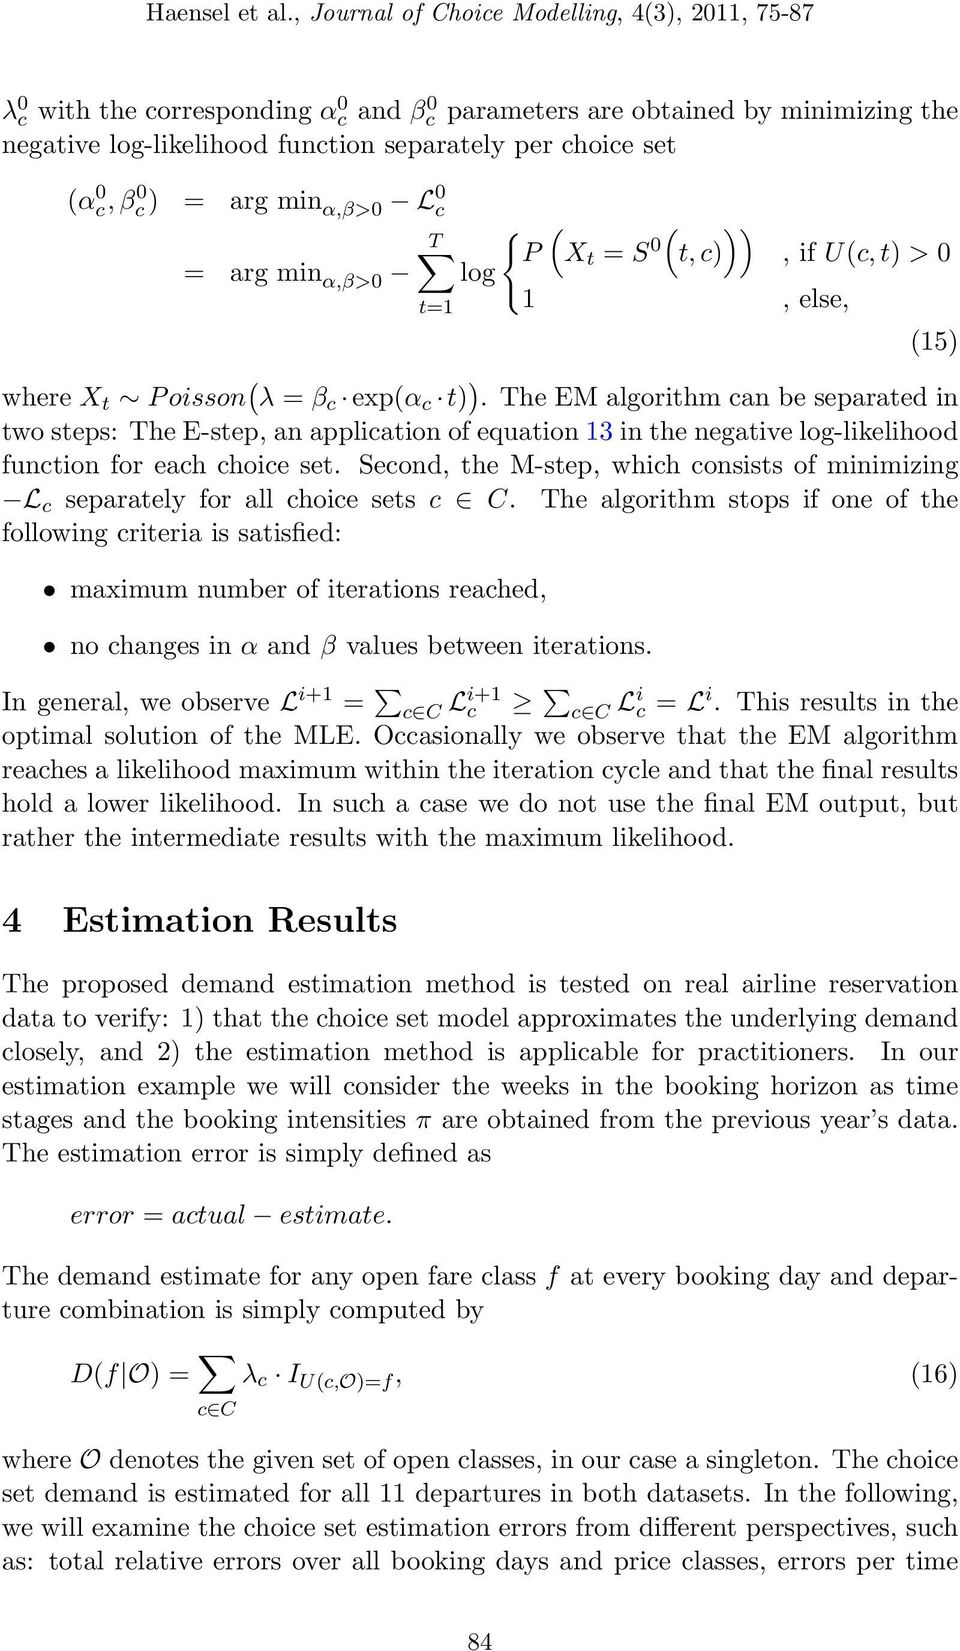 The EM algorithm can be separated in two steps: The E-step, an application of equation 13 in the negative log-likelihood function for each choice set.